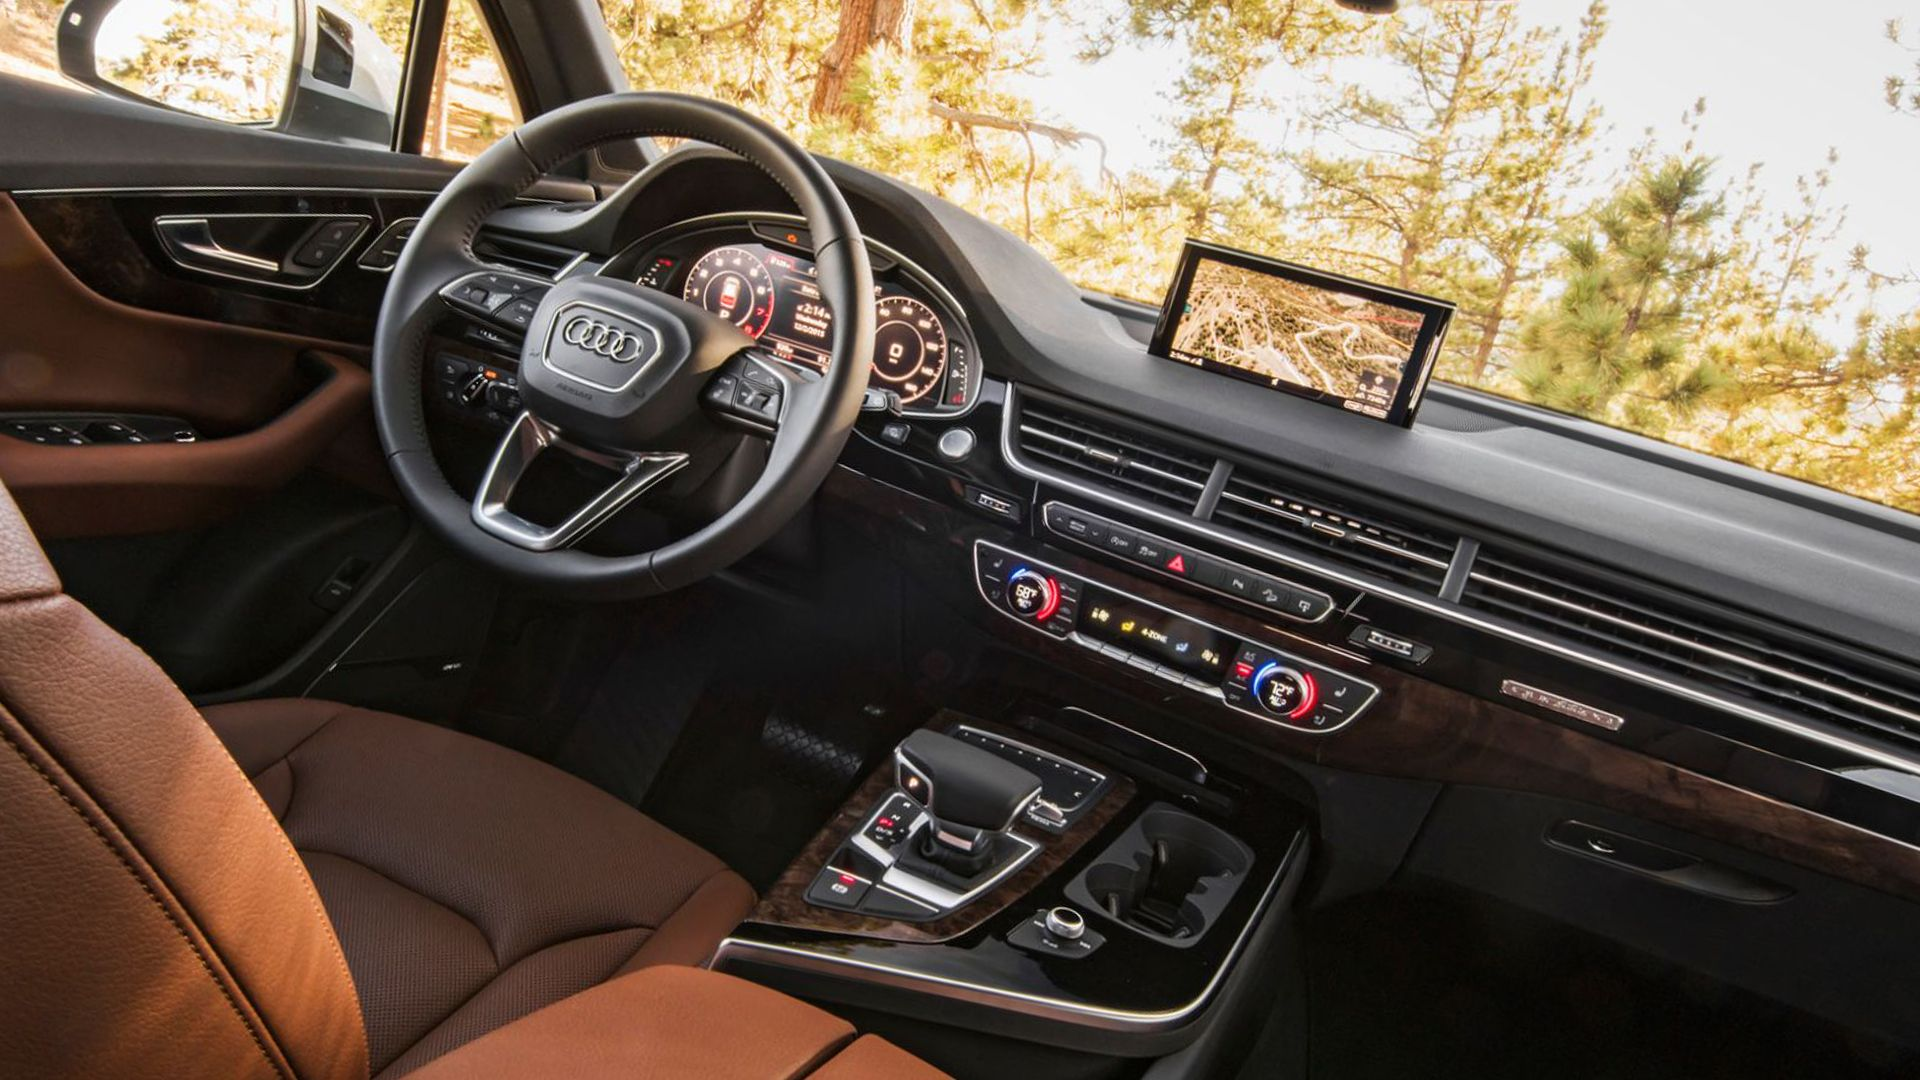 2019 Audi Q7 Interior Design Good Cars 2018 2019 Model Year Audi Q7 Audi Audi Q7 Interior